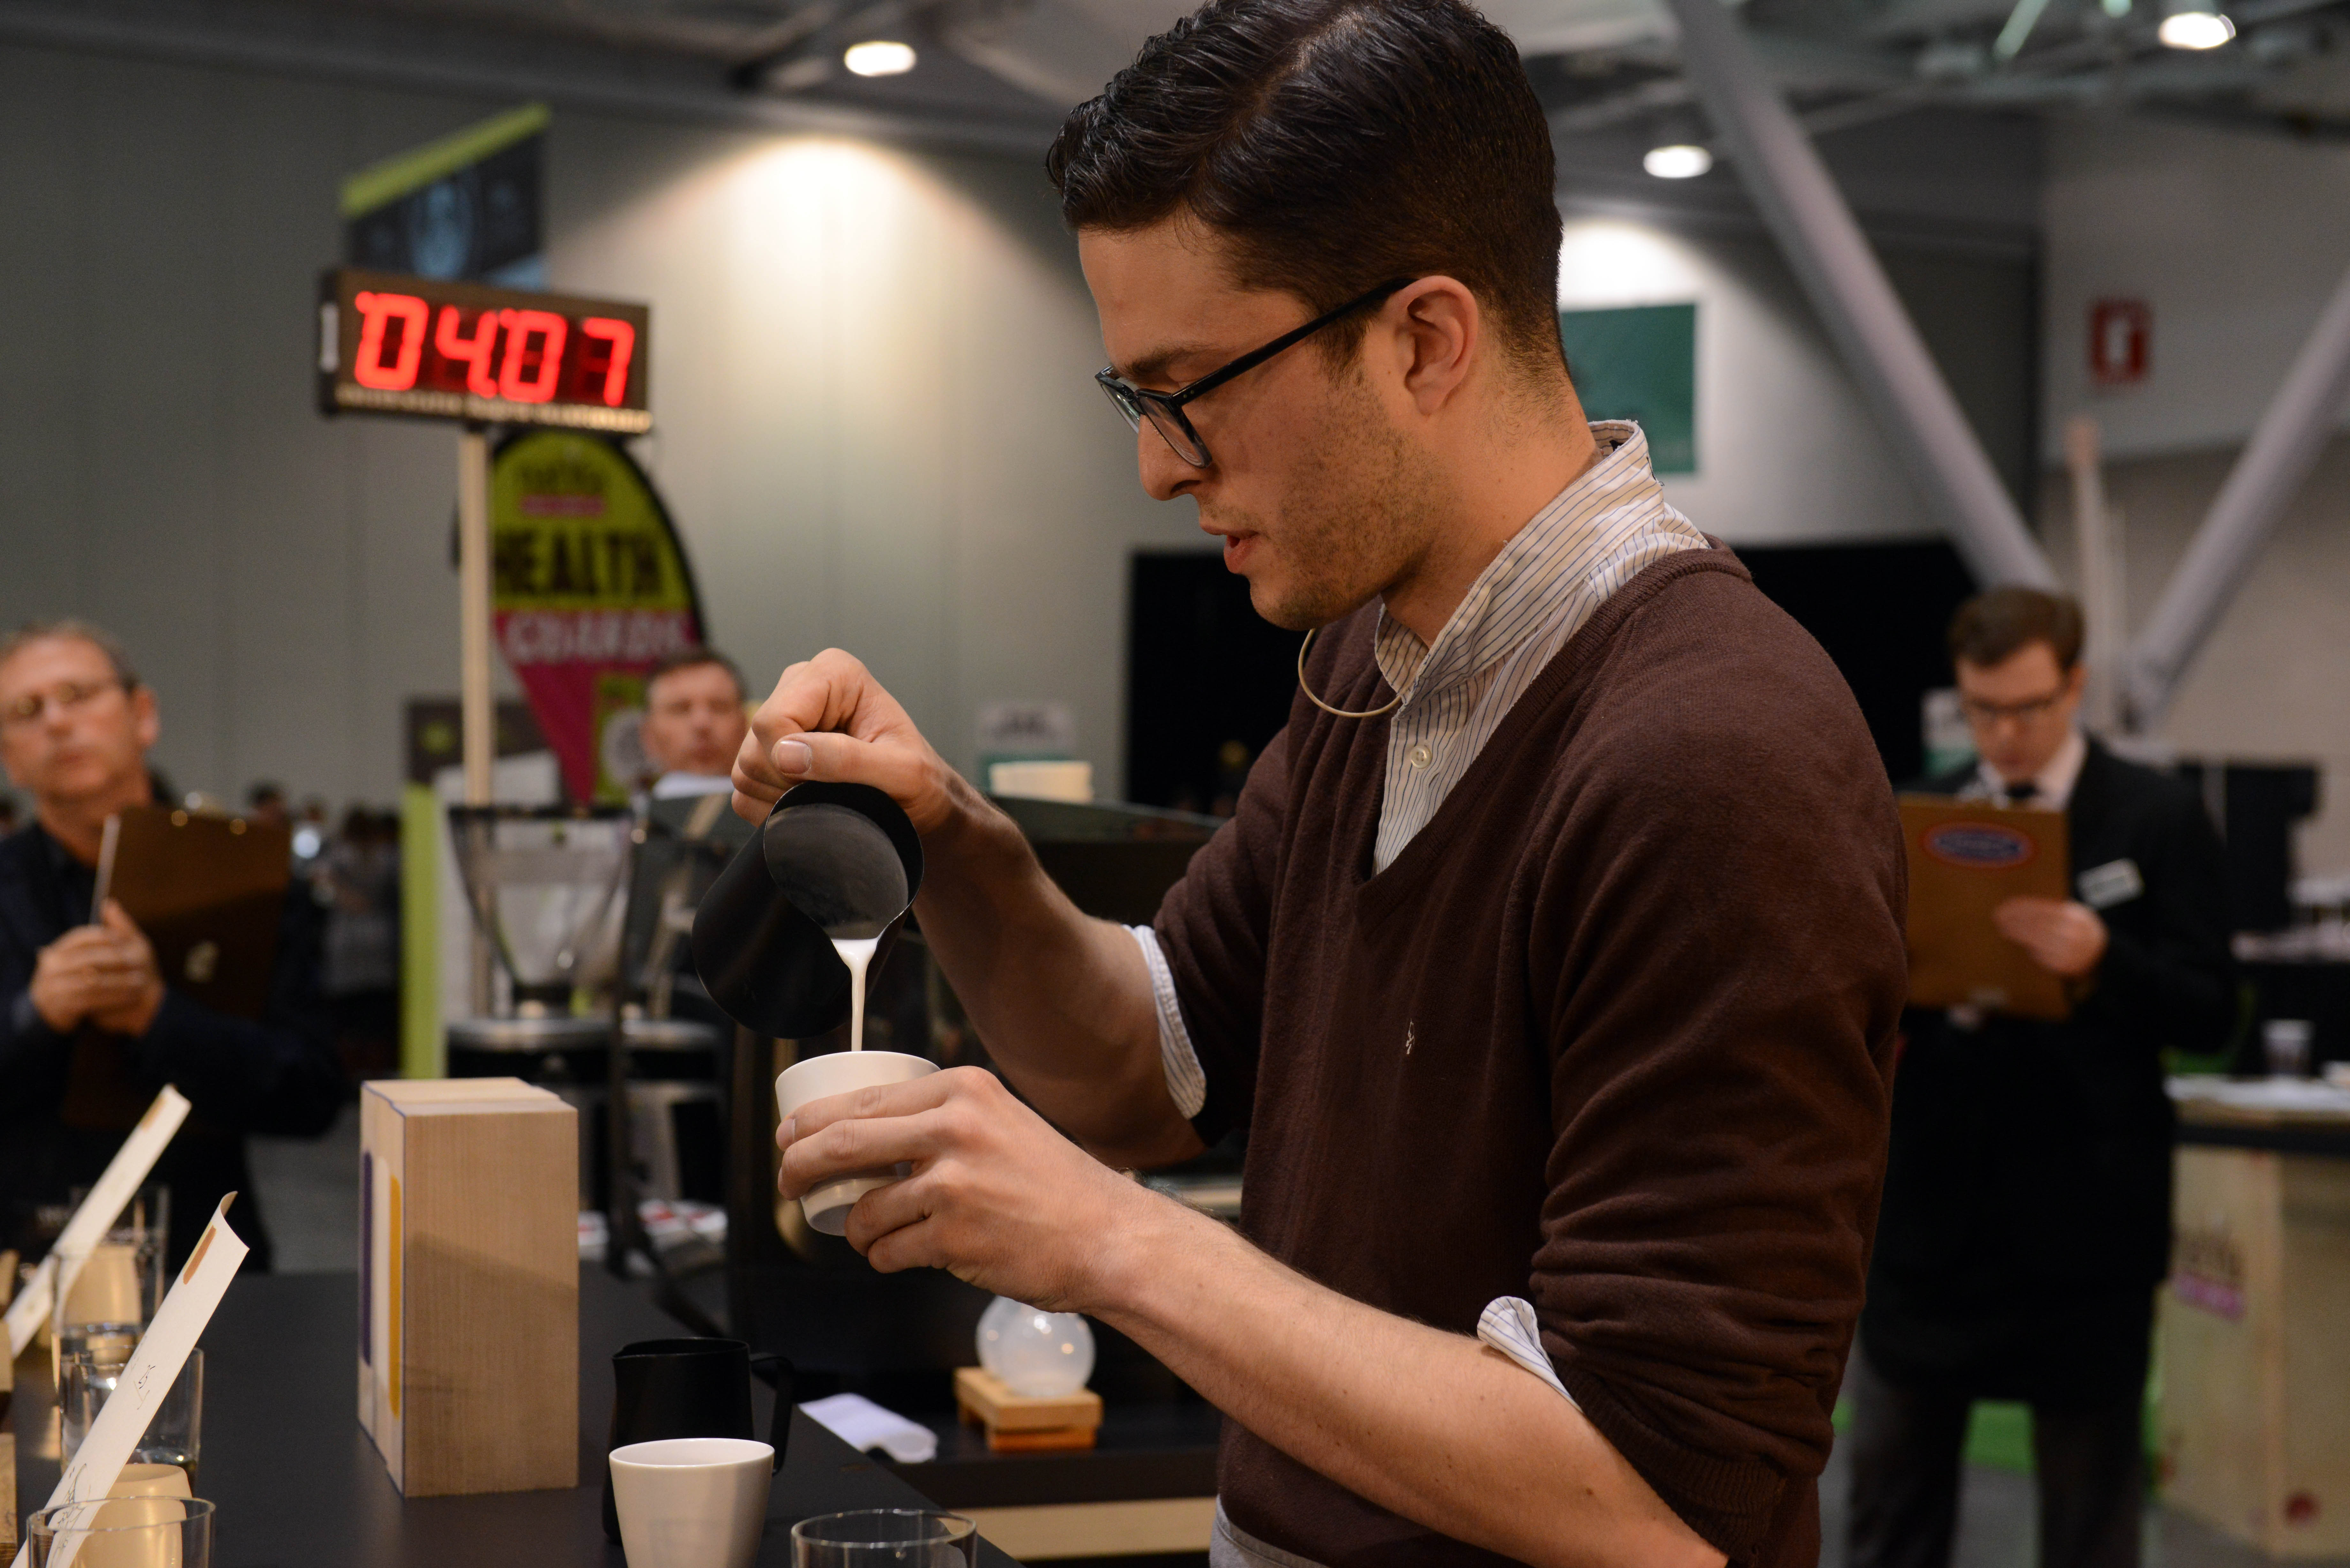 Babinski competing at a barista competition in 2013